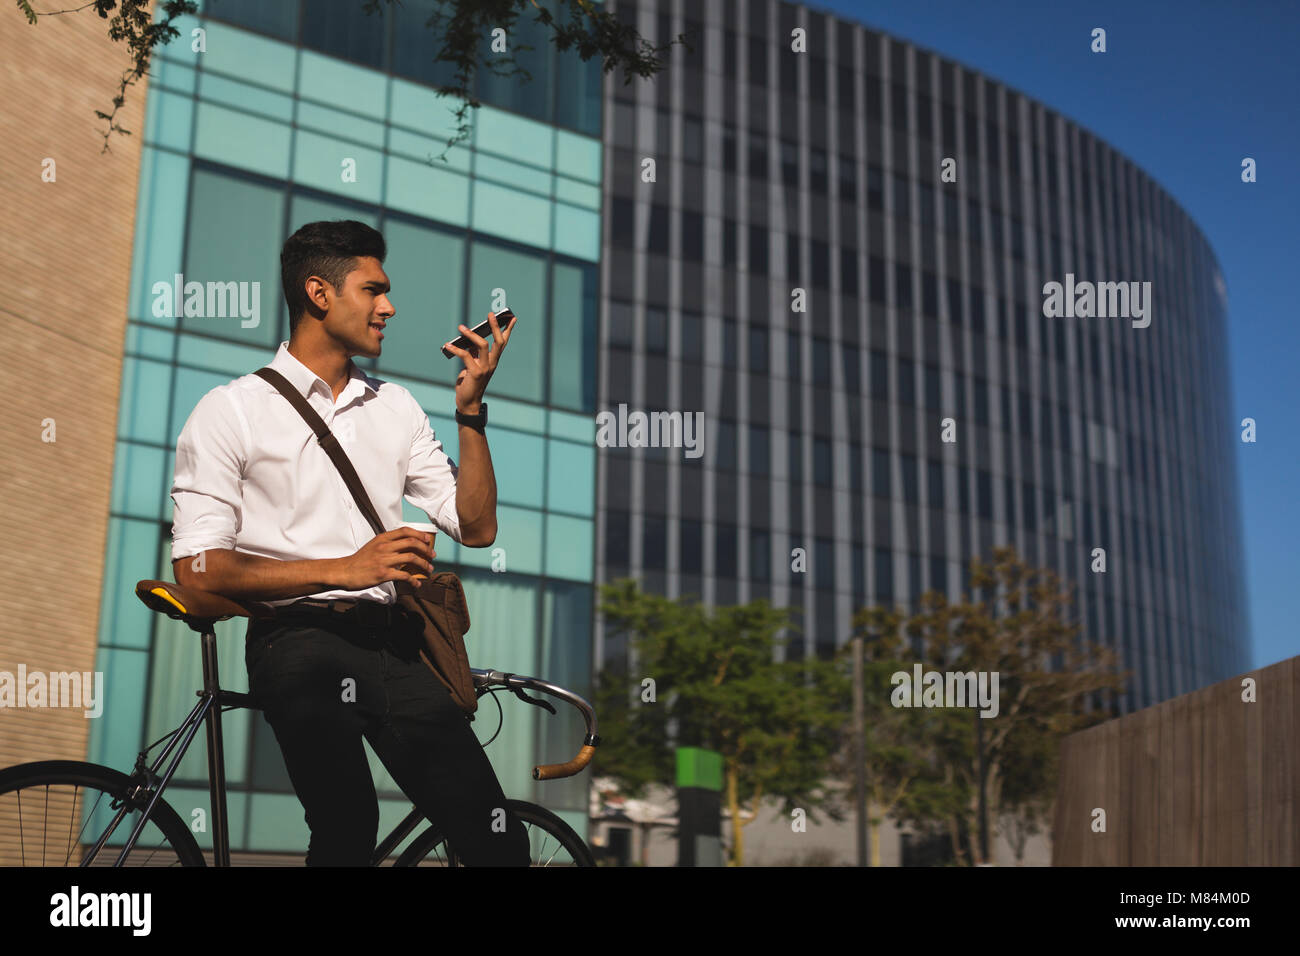 Businessman talking on mobile phone outside office premises - Stock Image